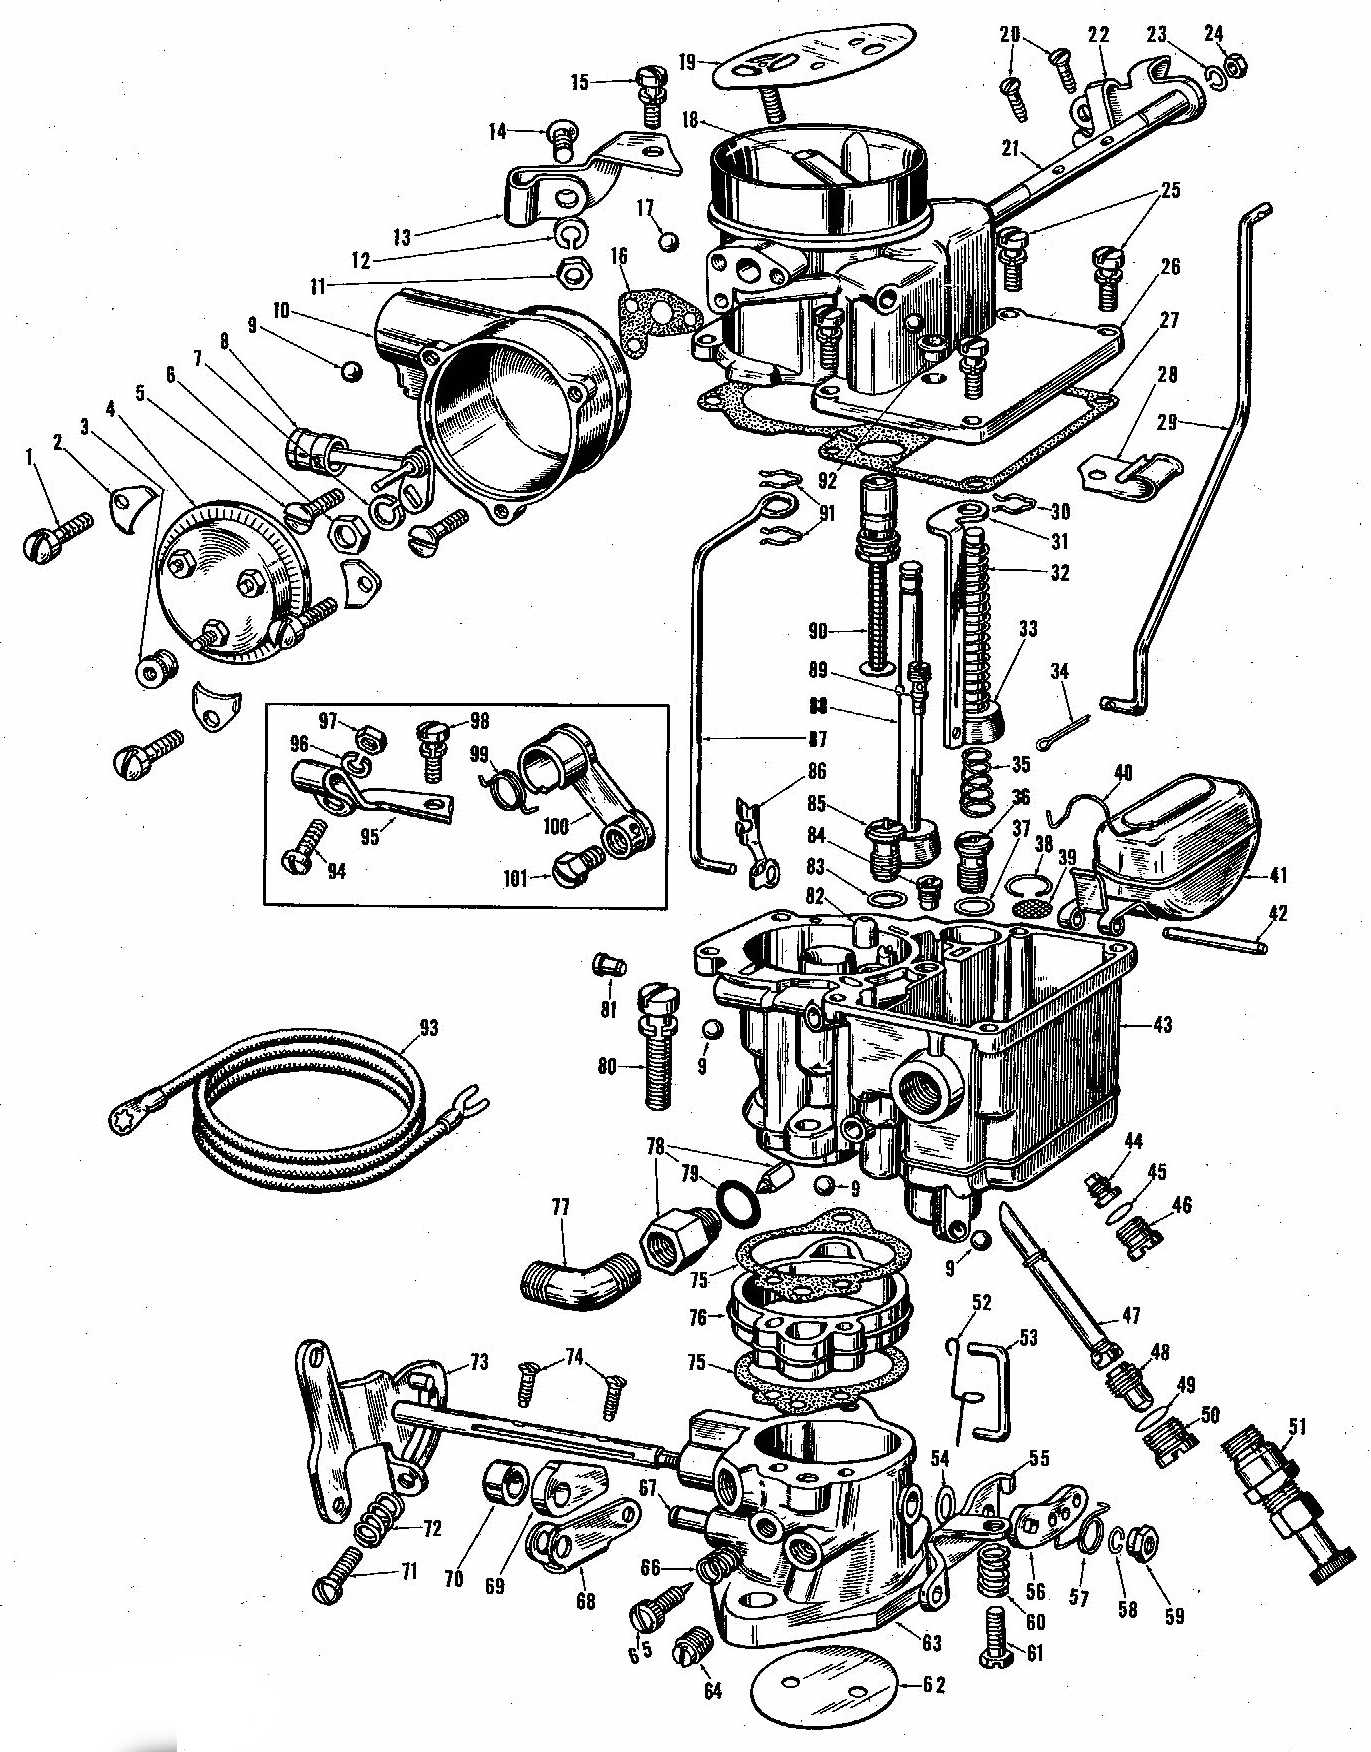 Bxov Exploded View